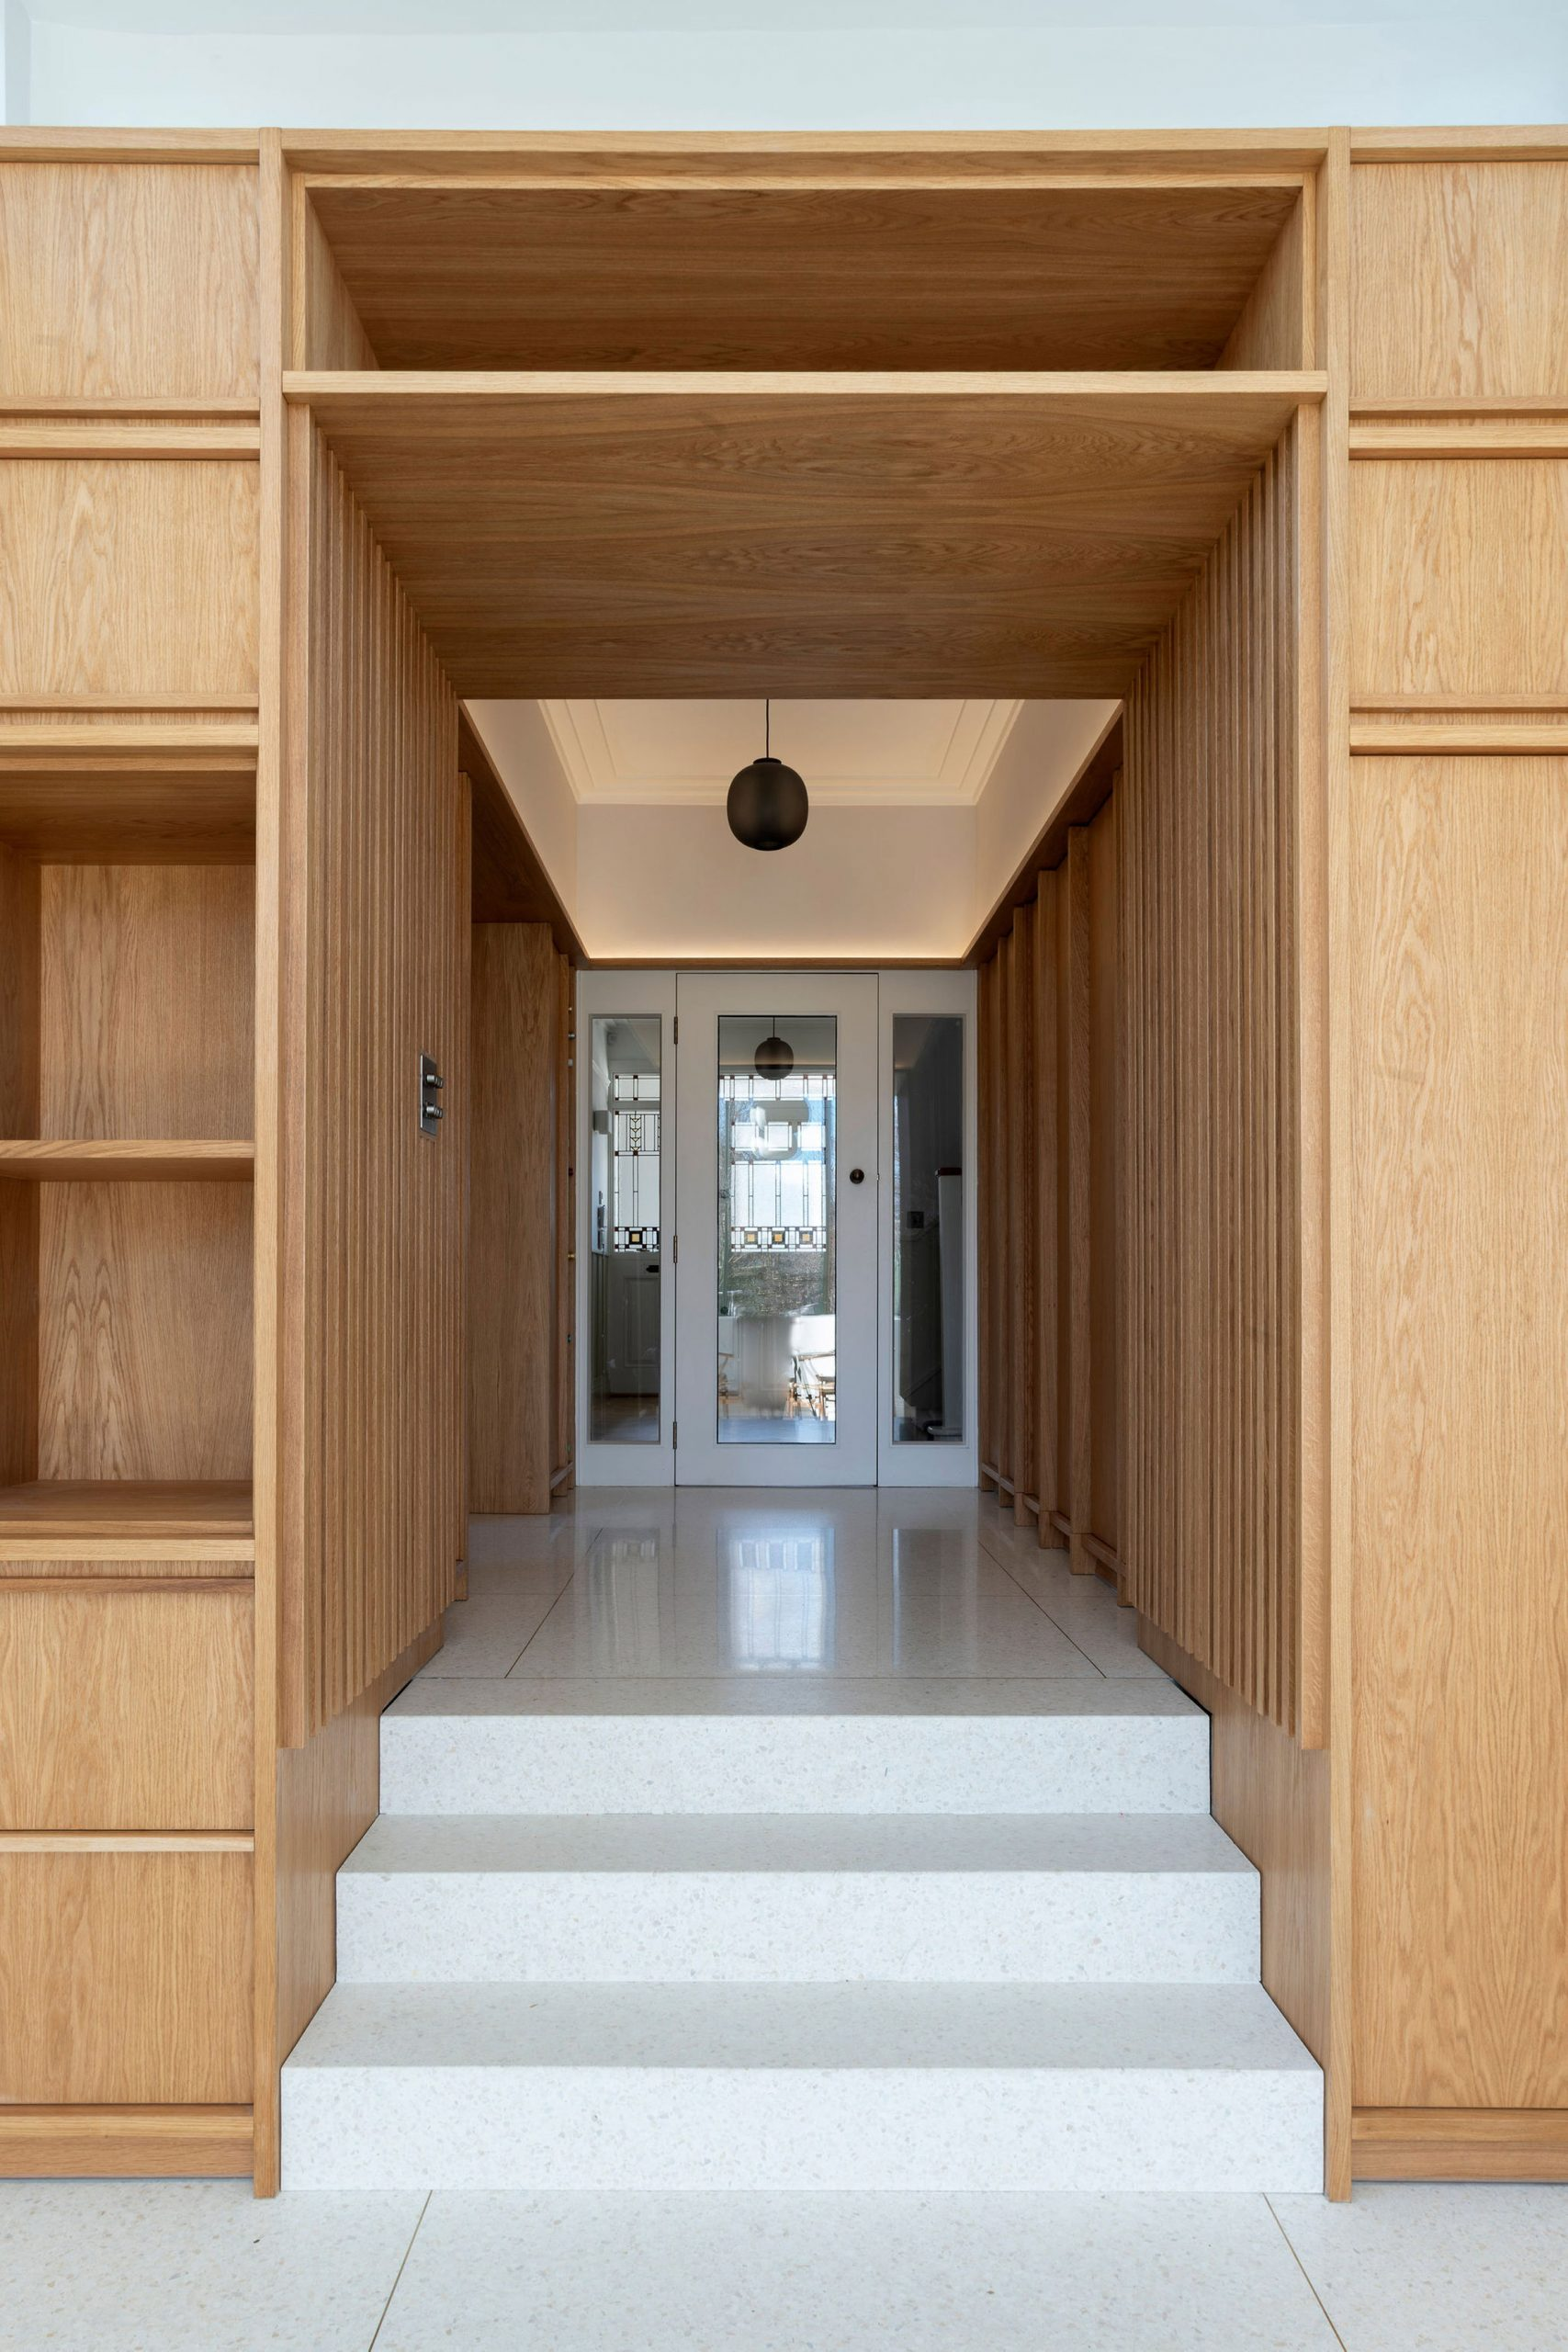 Lobby area employs a wood and terrazzo scheme